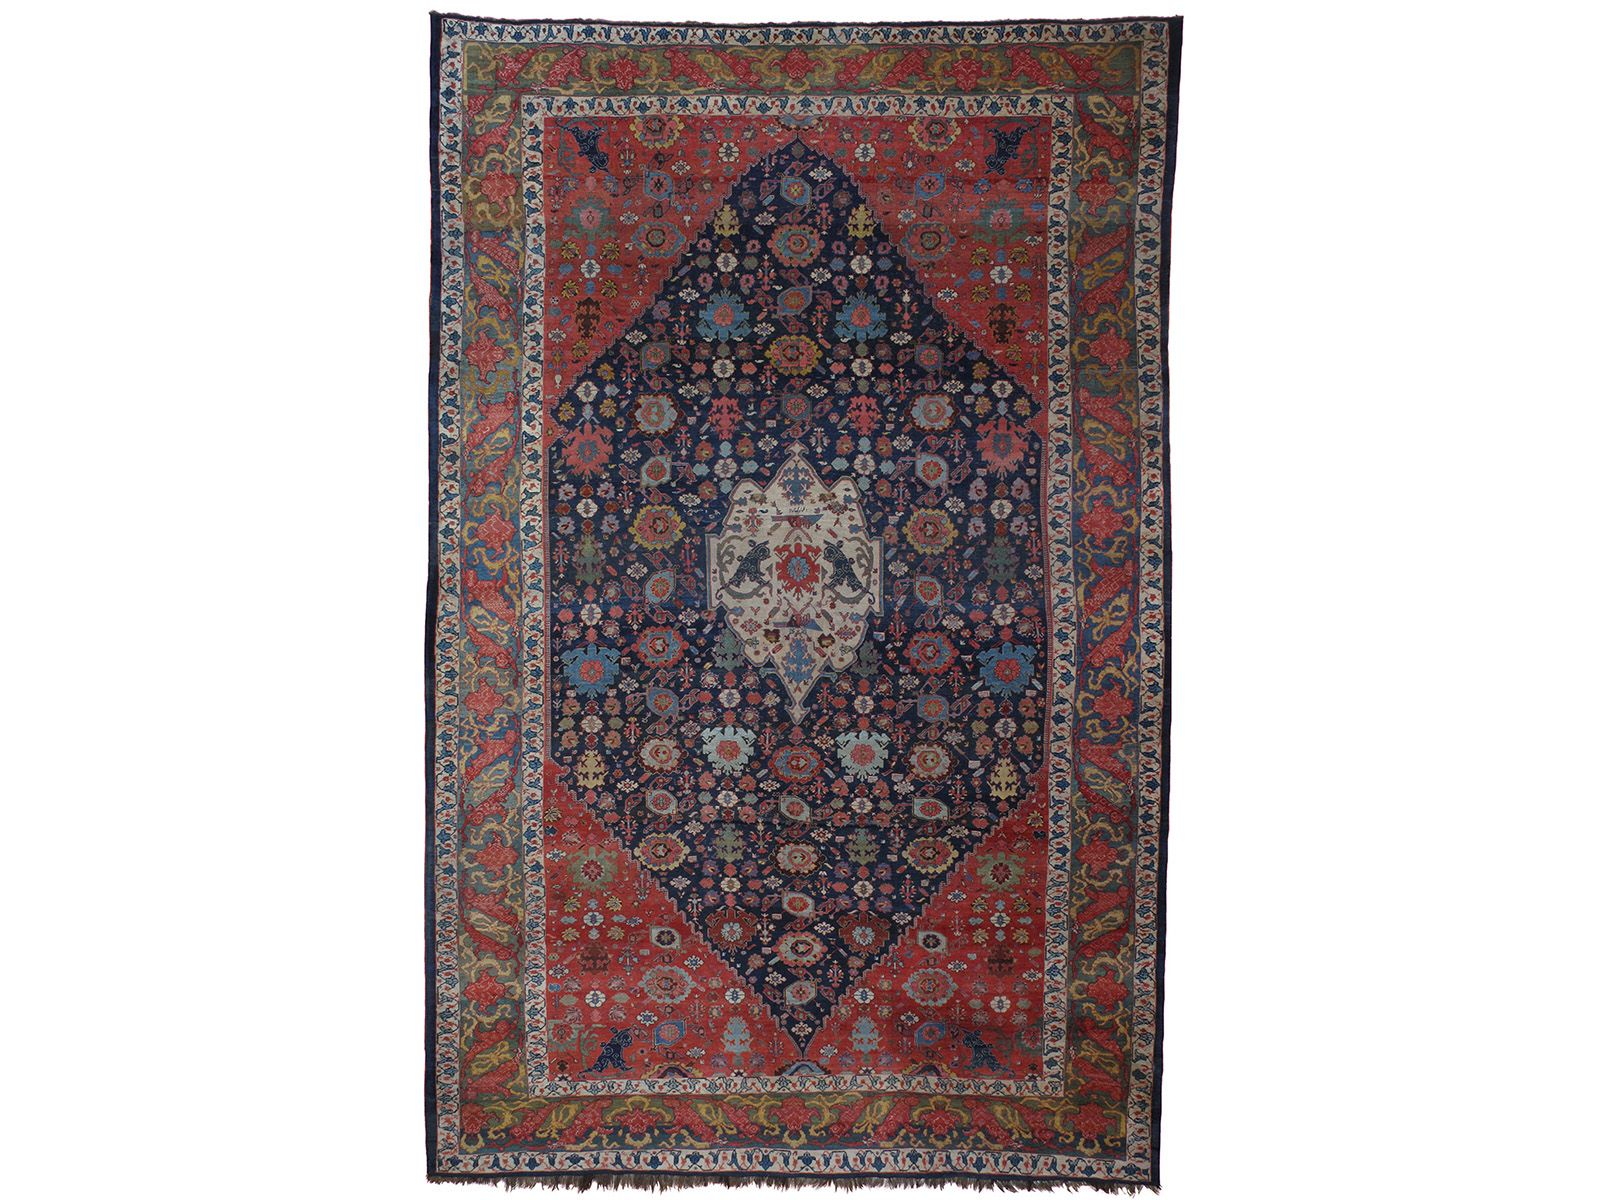 Double Knot Antique Bidjar Carpet 13 6 X 20 10 405cm X 625cm Iran Western Persia Late 19th Century Westerns Iran